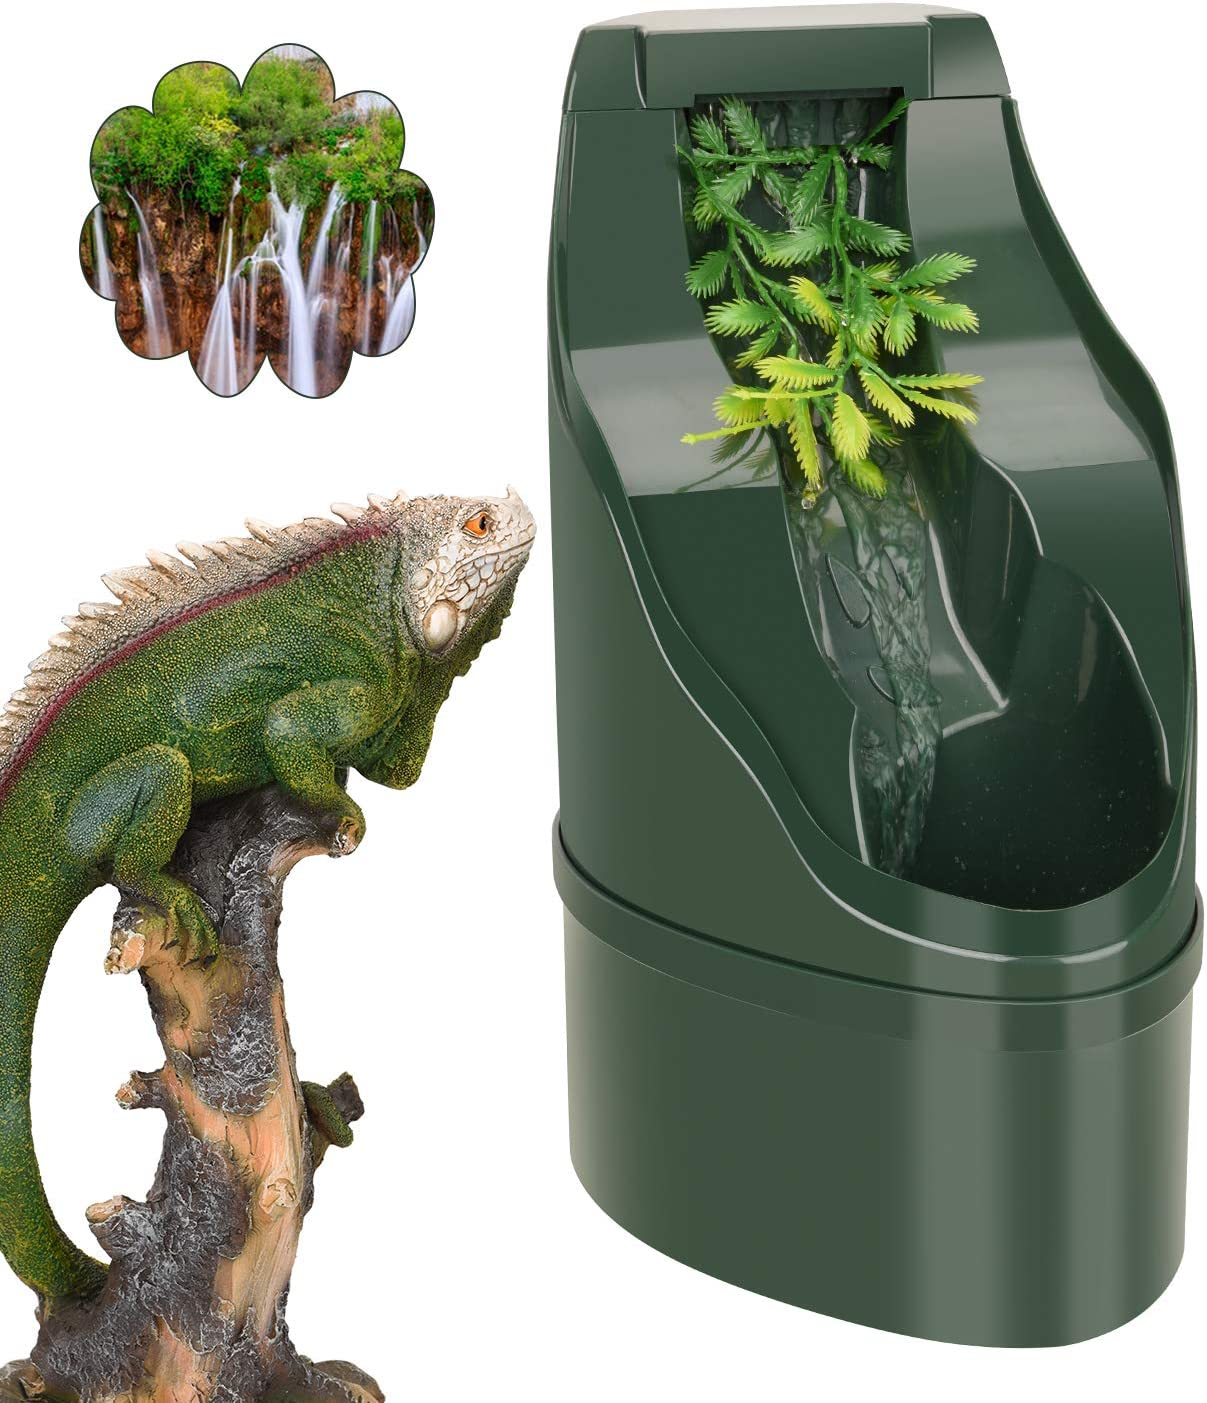 Ninuo Reptile Water Dispenser - Snake, Gecko, Chameleon, Tortoise, Bearded Dragon Drinking Water Dripper Bowl for Your Pet Reptiles - Large Nontoxic Fountain Water Dish – Terrarium & Tank Accessories